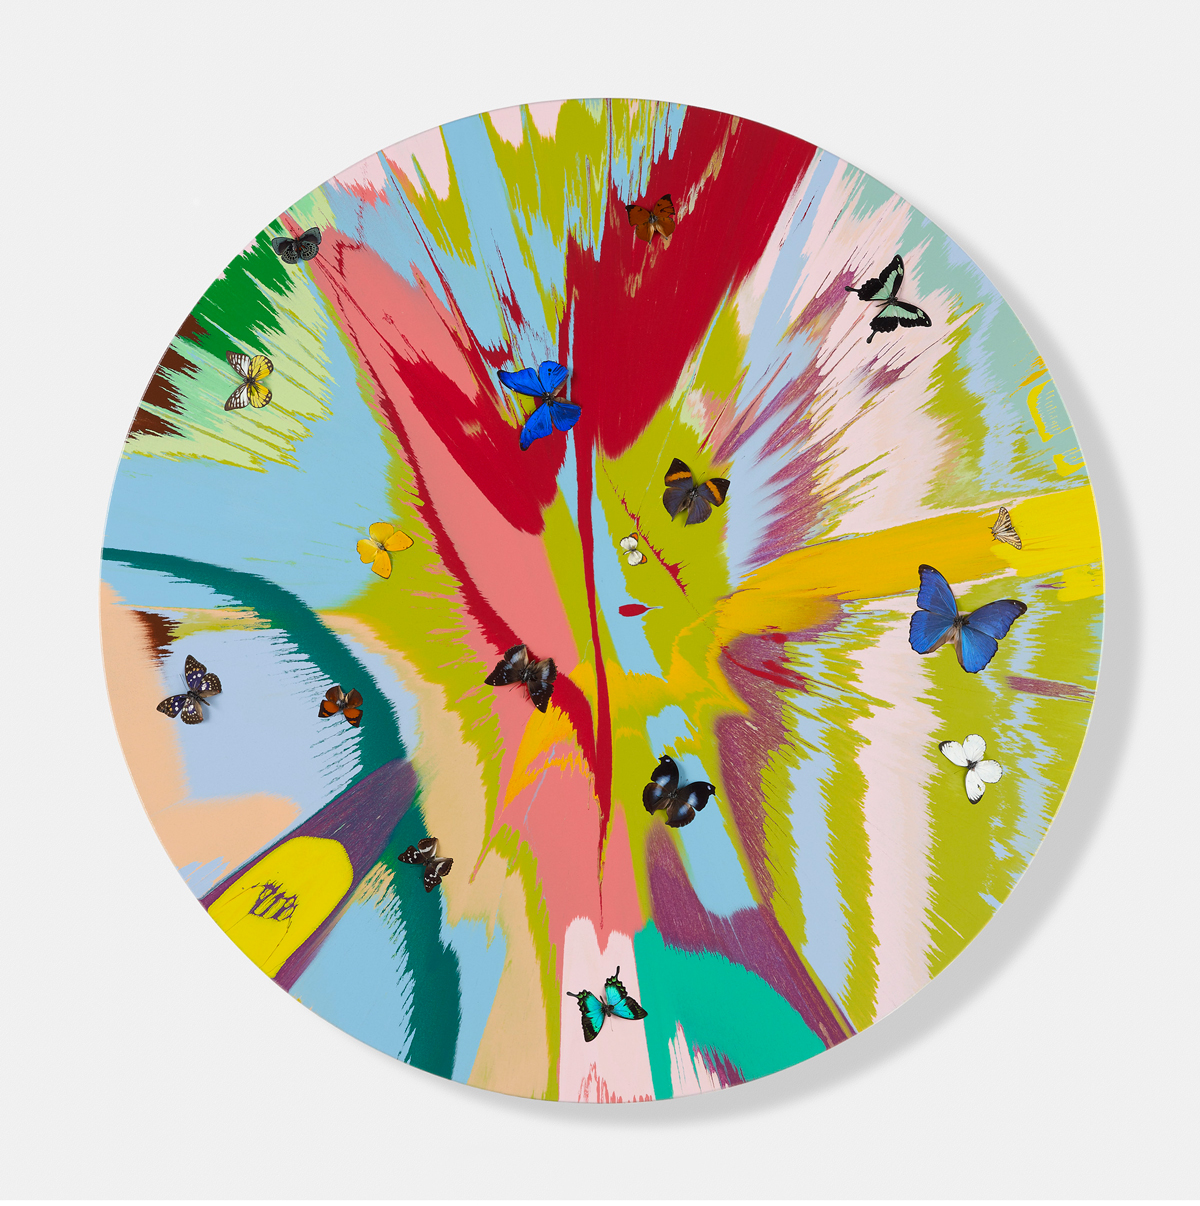 Damien-Hirst-Beautiful-Fury-Painting-with-Butterflies-nicole-fuller-art-advisory